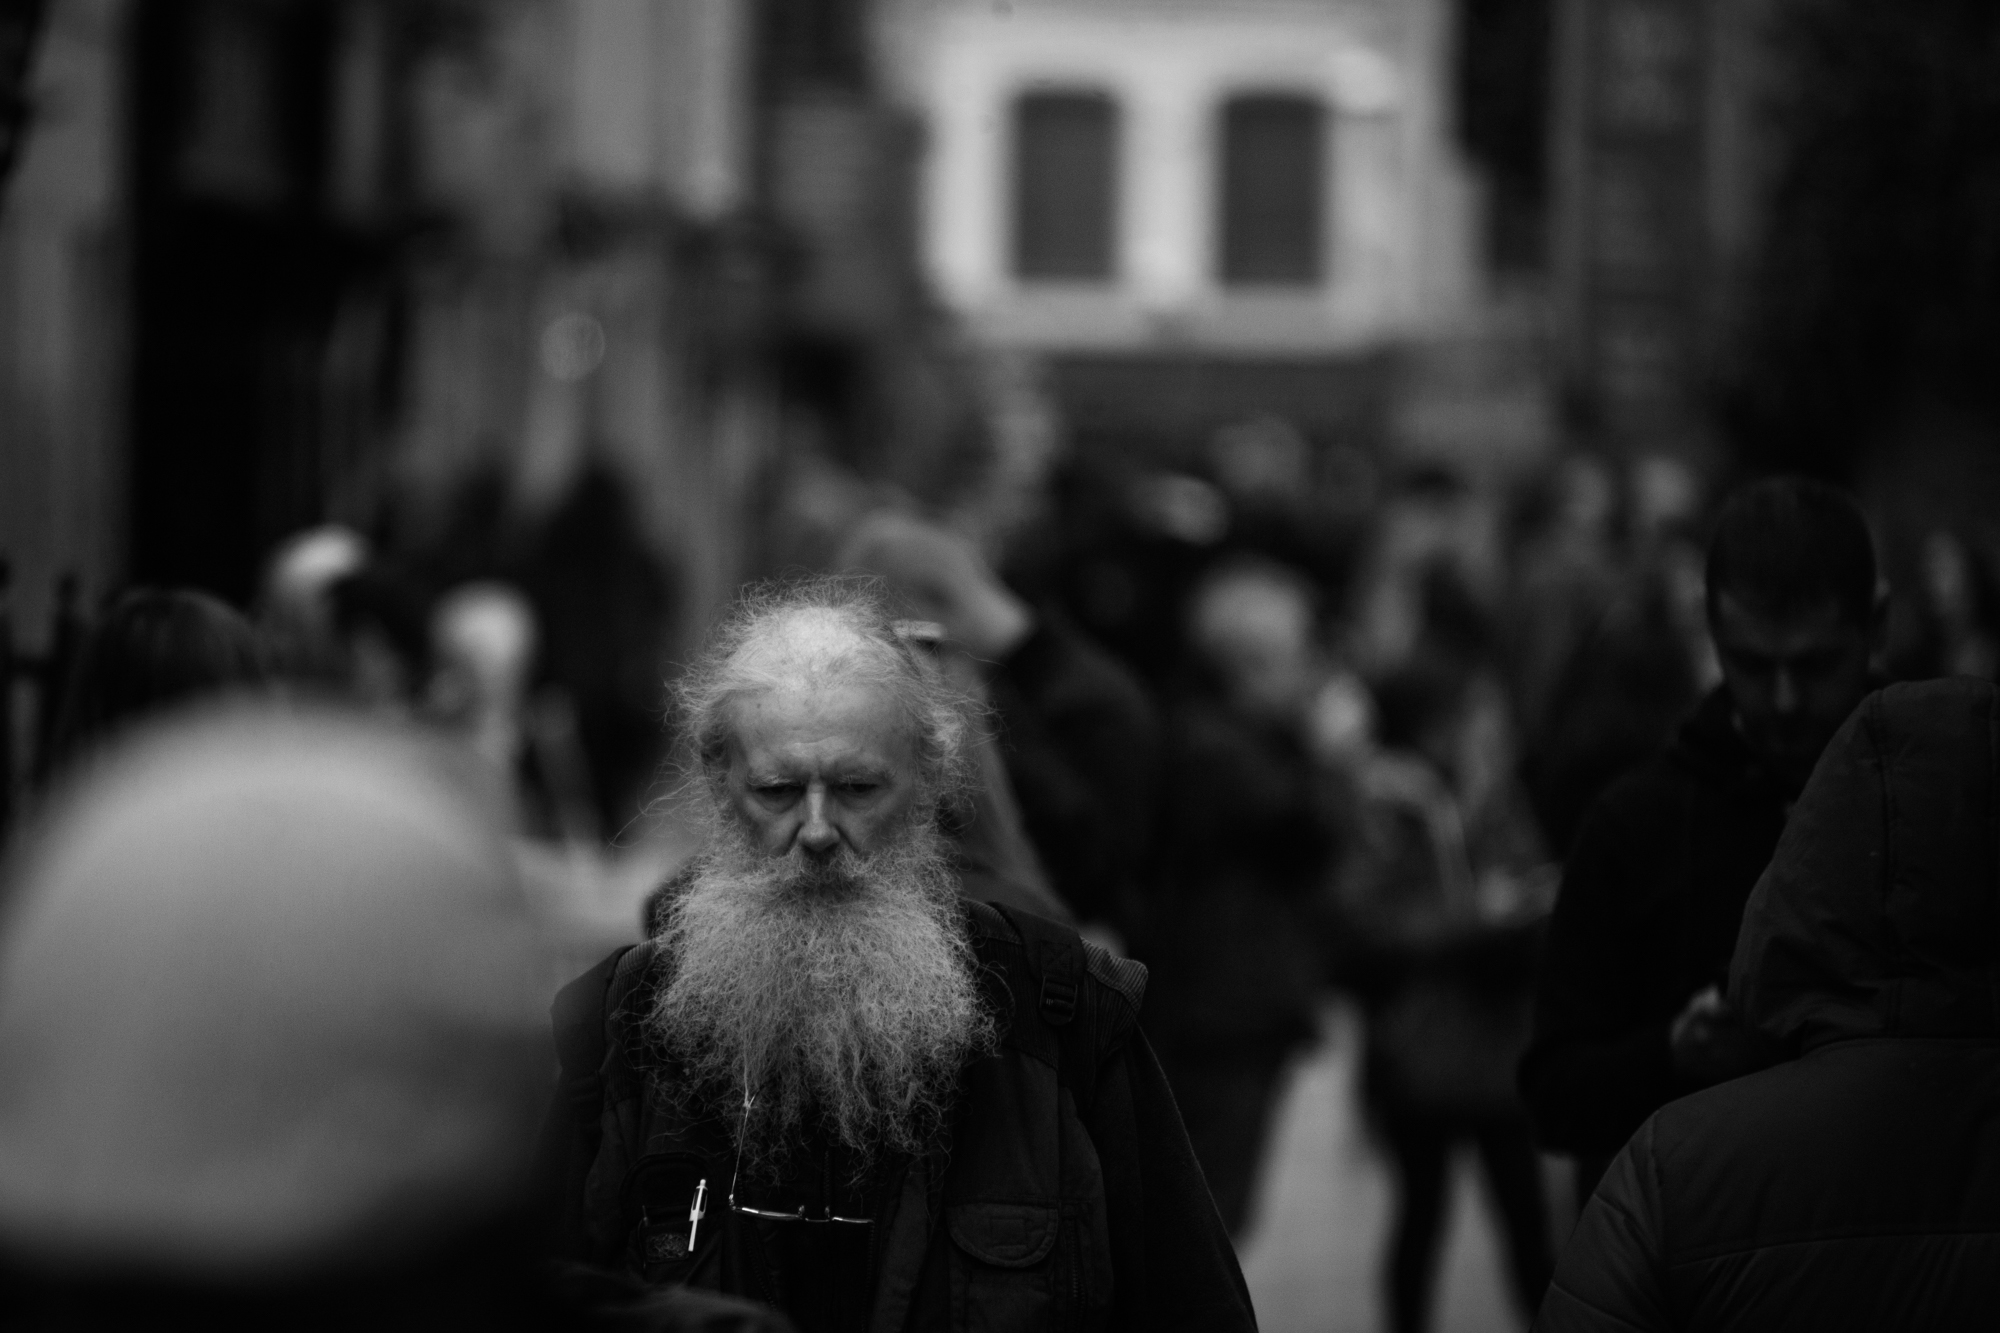 Have you seen the old men... by Boxxbeidl